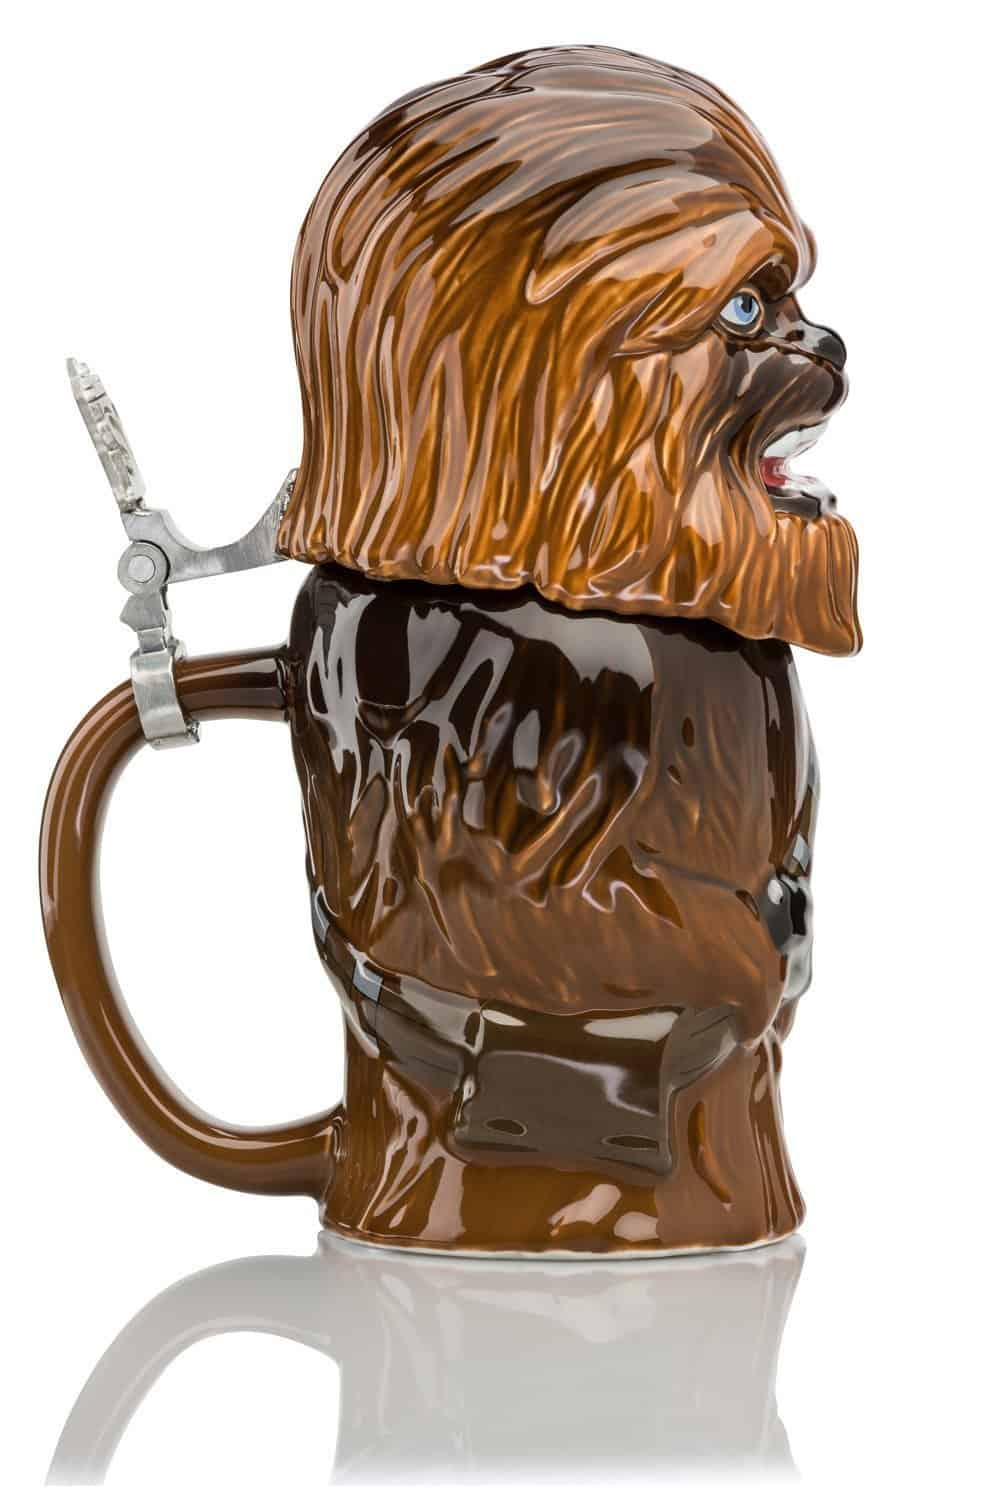 Star Wars Chewbacca Stein Boyfriend Gift Idea